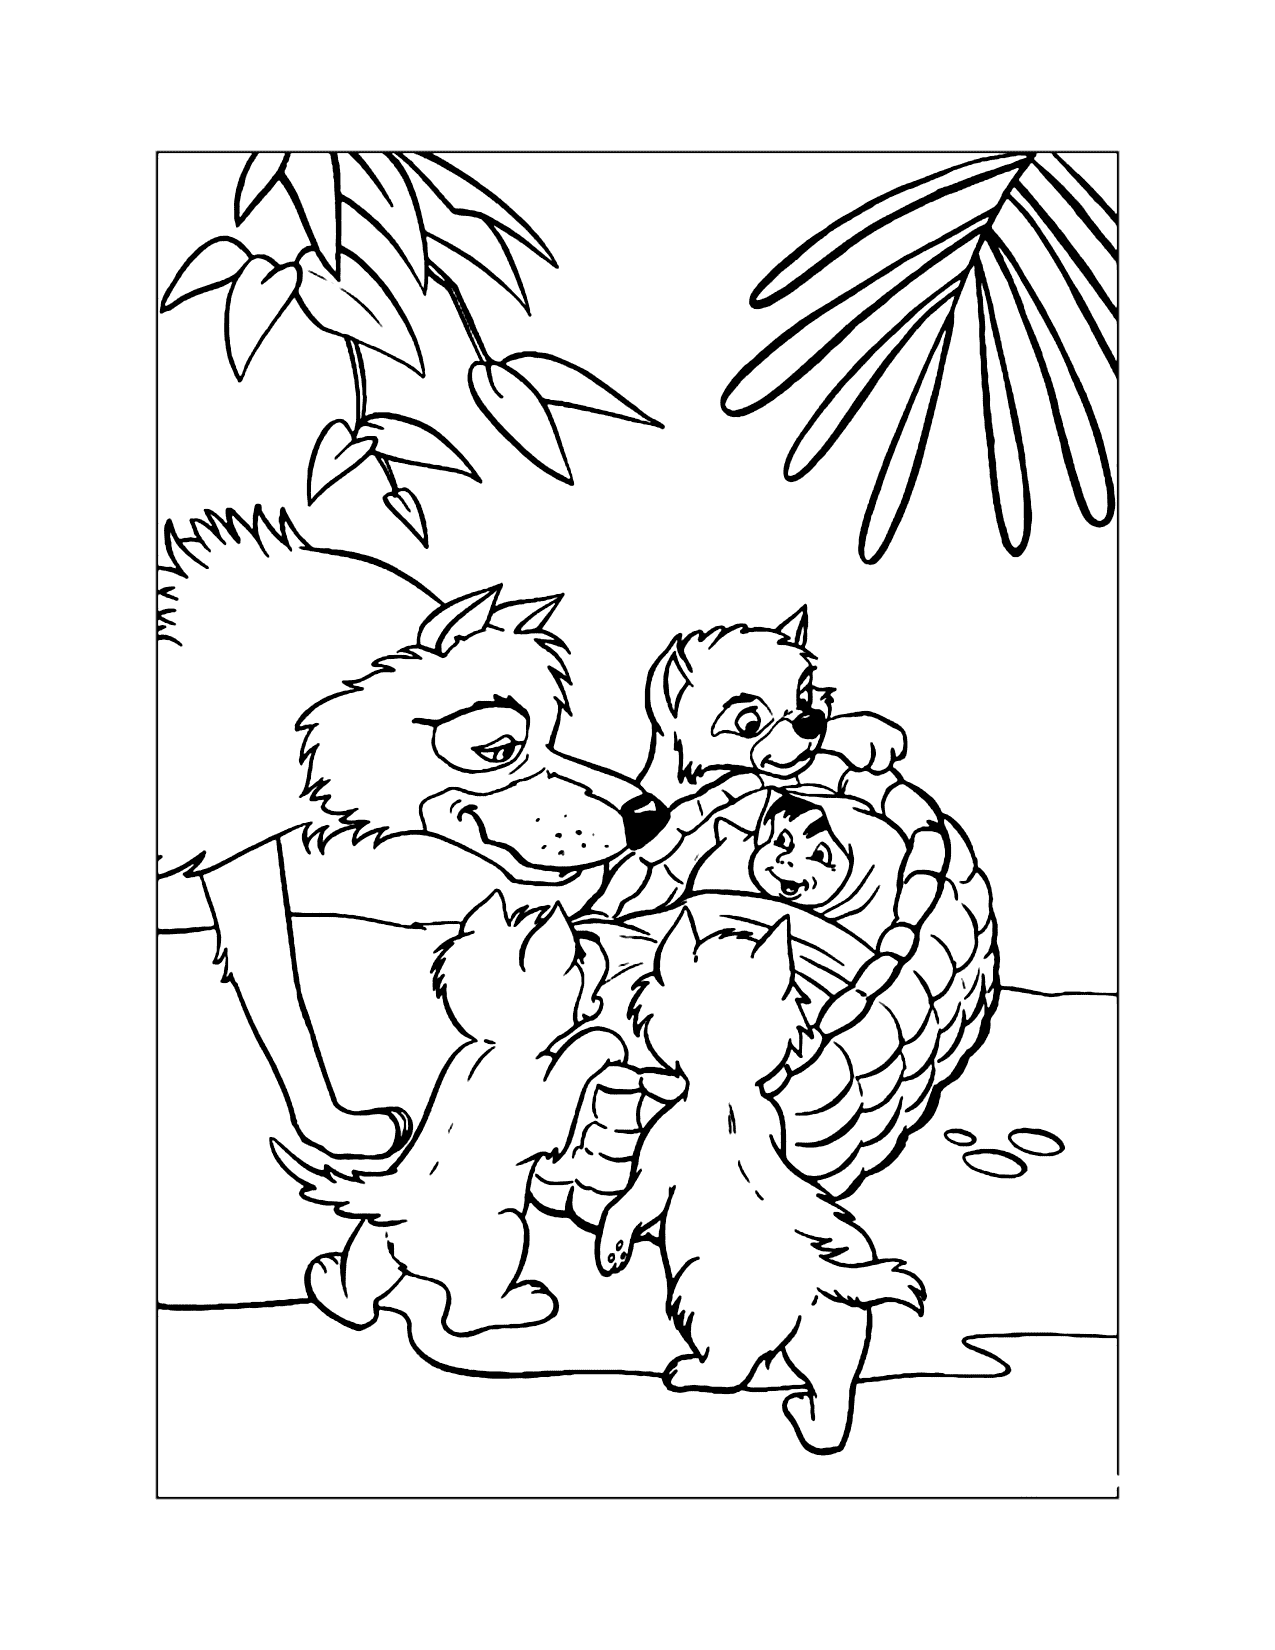 Wolves And Baby Mowgli Jungle Book Coloring Page